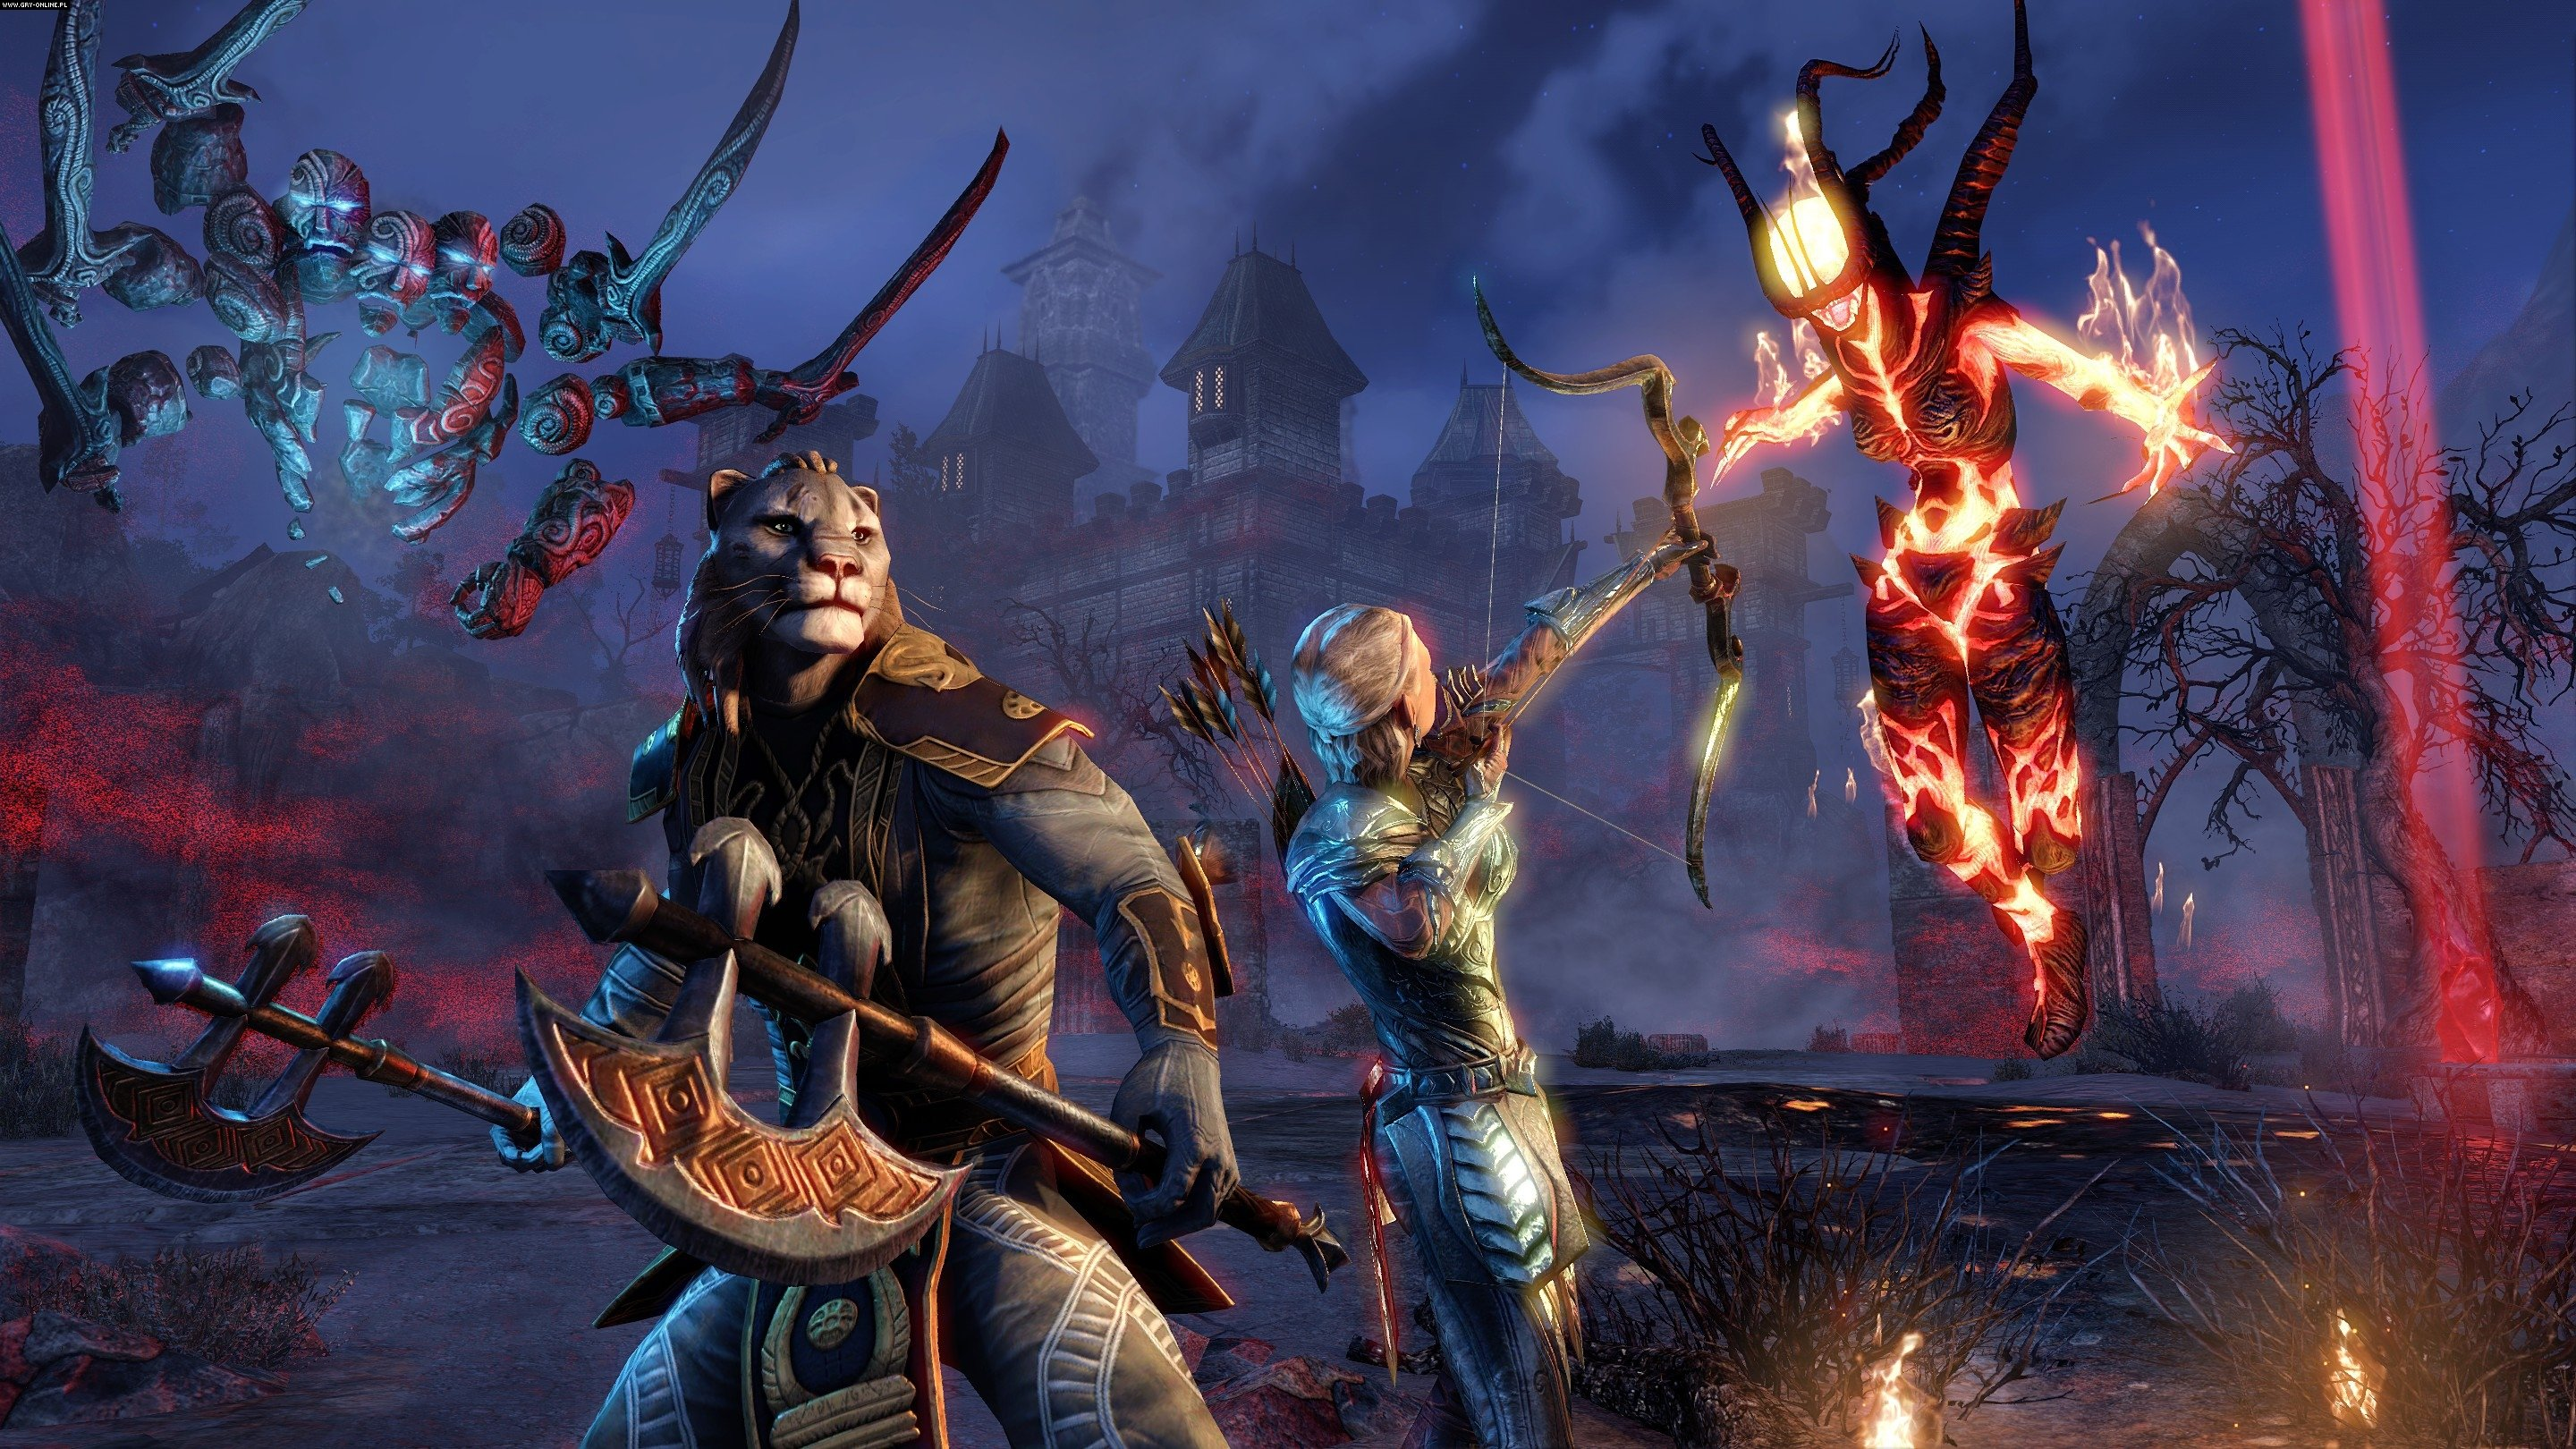 The Elder Scrolls Online: Tamriel Unlimited PC, PS4, XONE Gry Screen 7/104, ZeniMax Online Studios, Bethesda Softworks